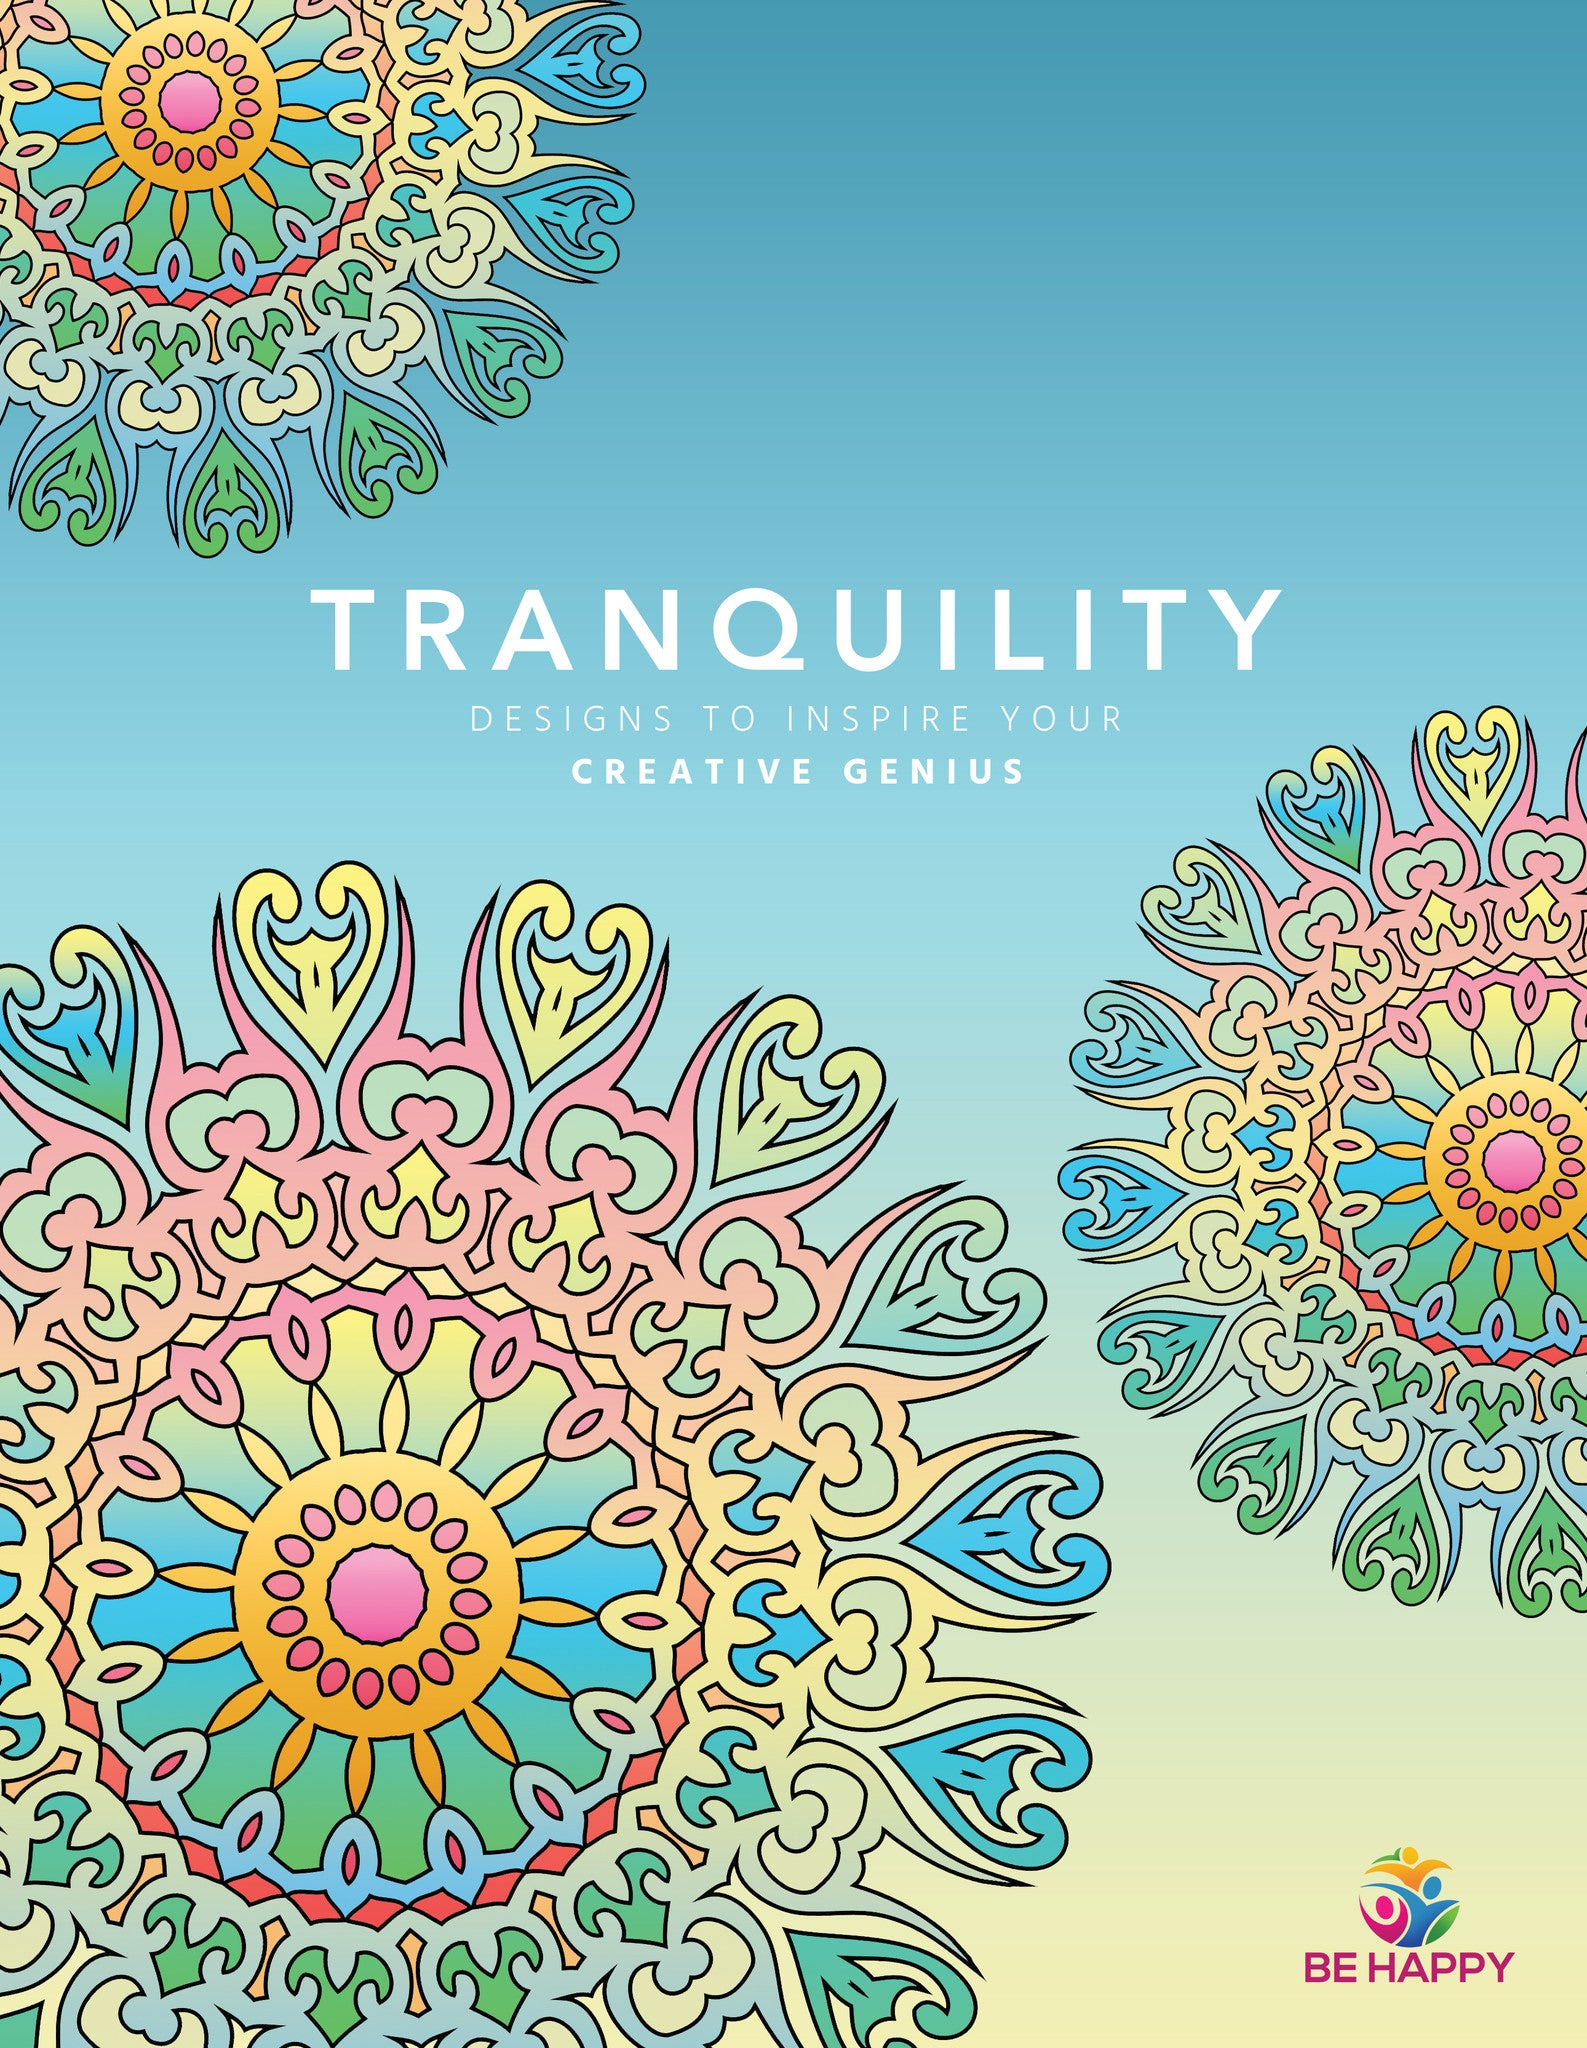 The coloring book genius - Tranquility Designs To Inspire Your Creative Genius